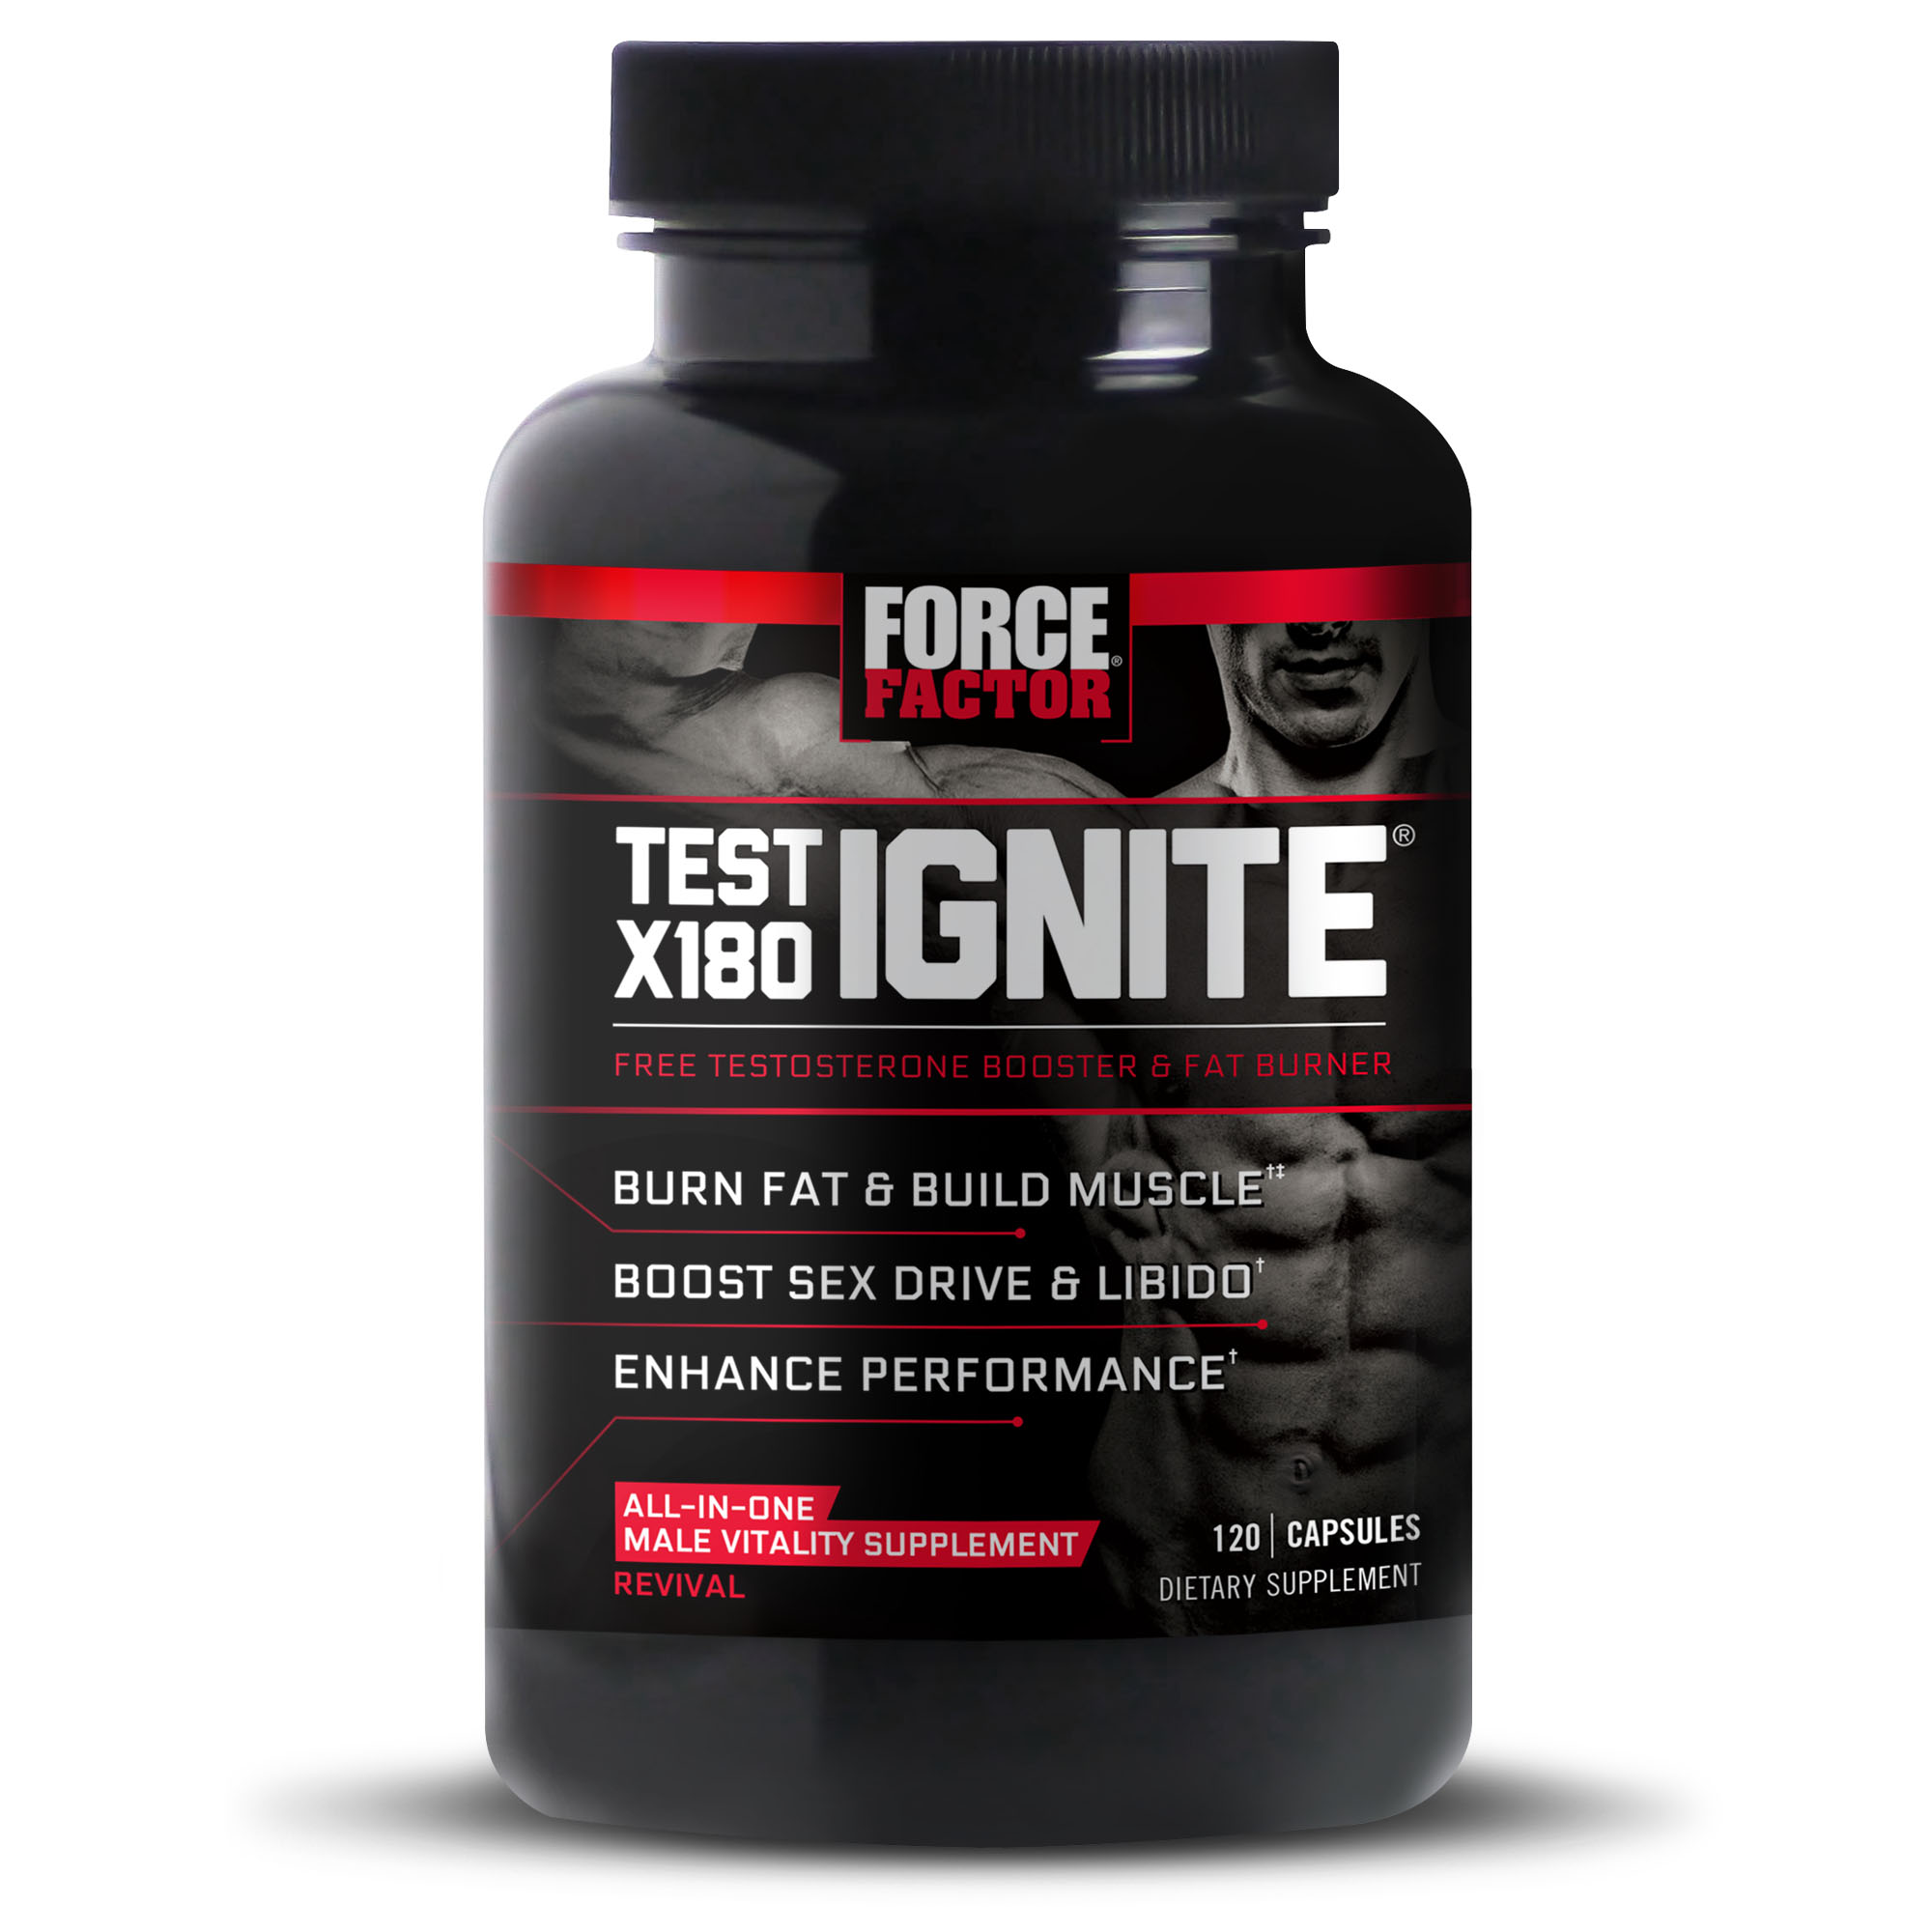 Force Factor Test X180 Ignite Test Booster Capsules, 120 Ct